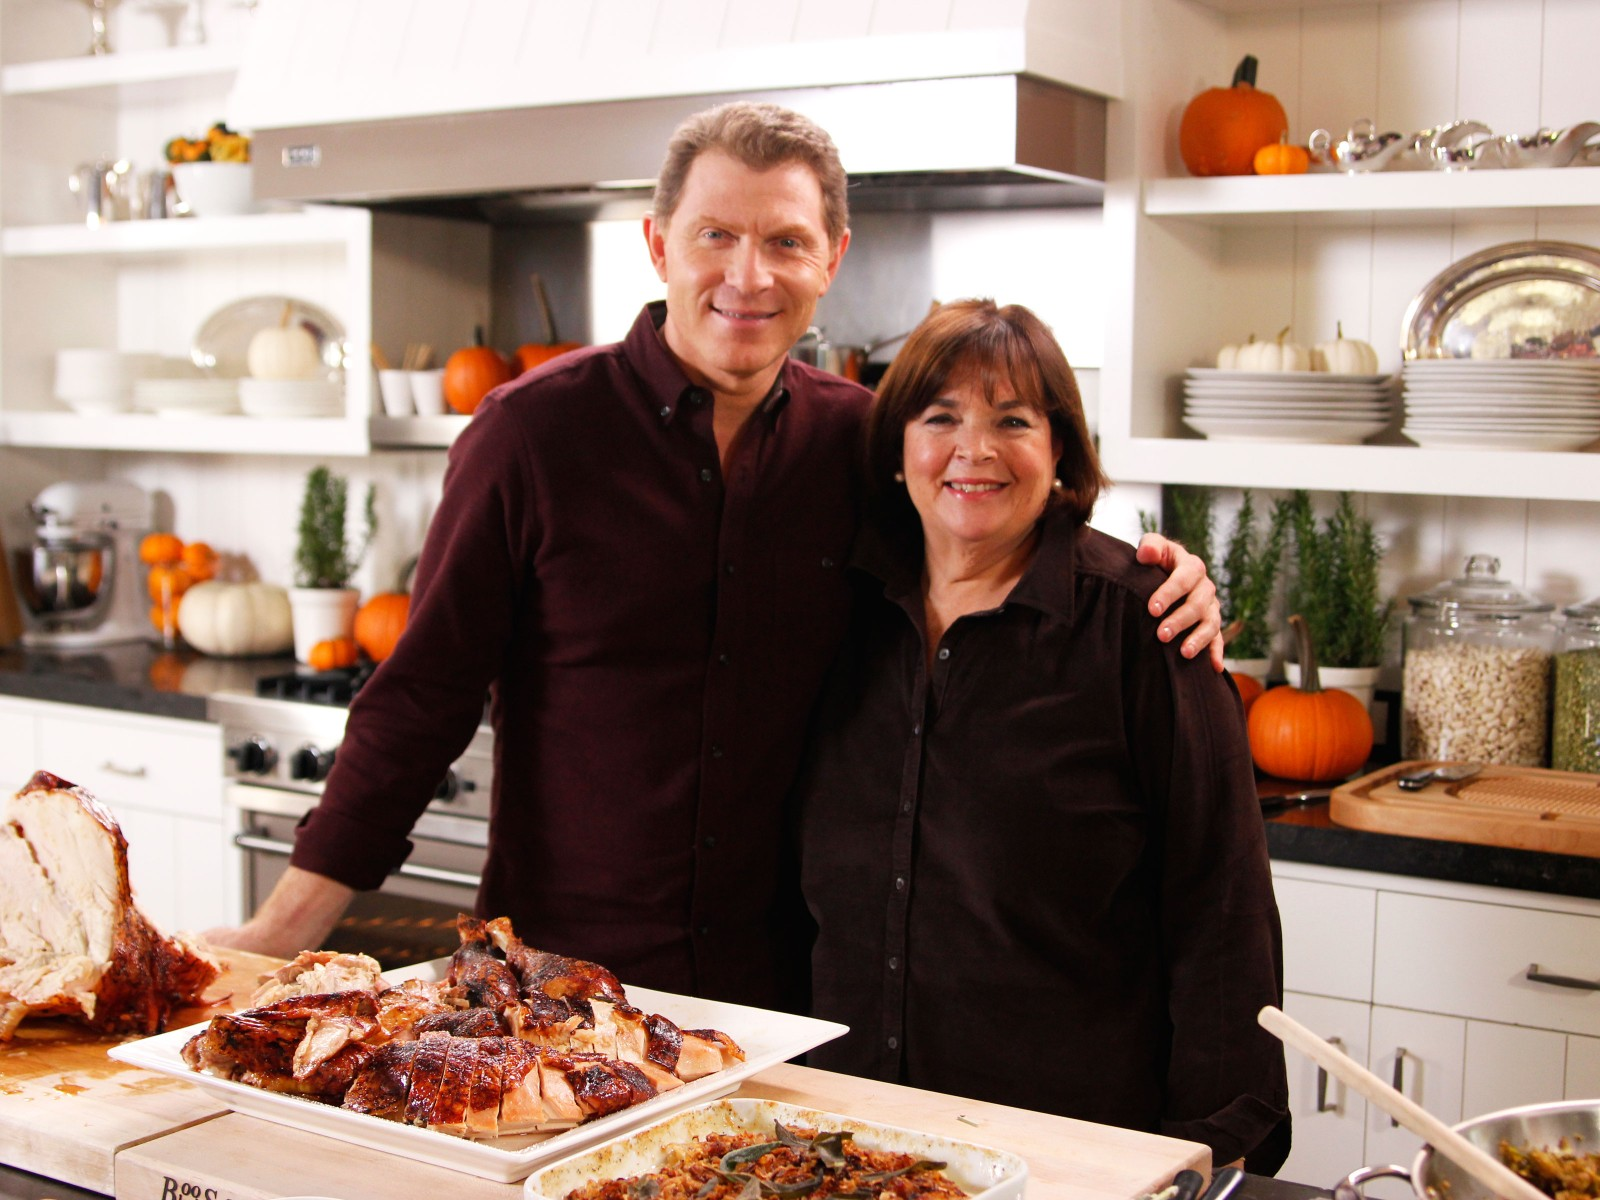 Nyc has thanksgiving cred with lots of celebrity chefs streeteasy - Ina garten tv show ...